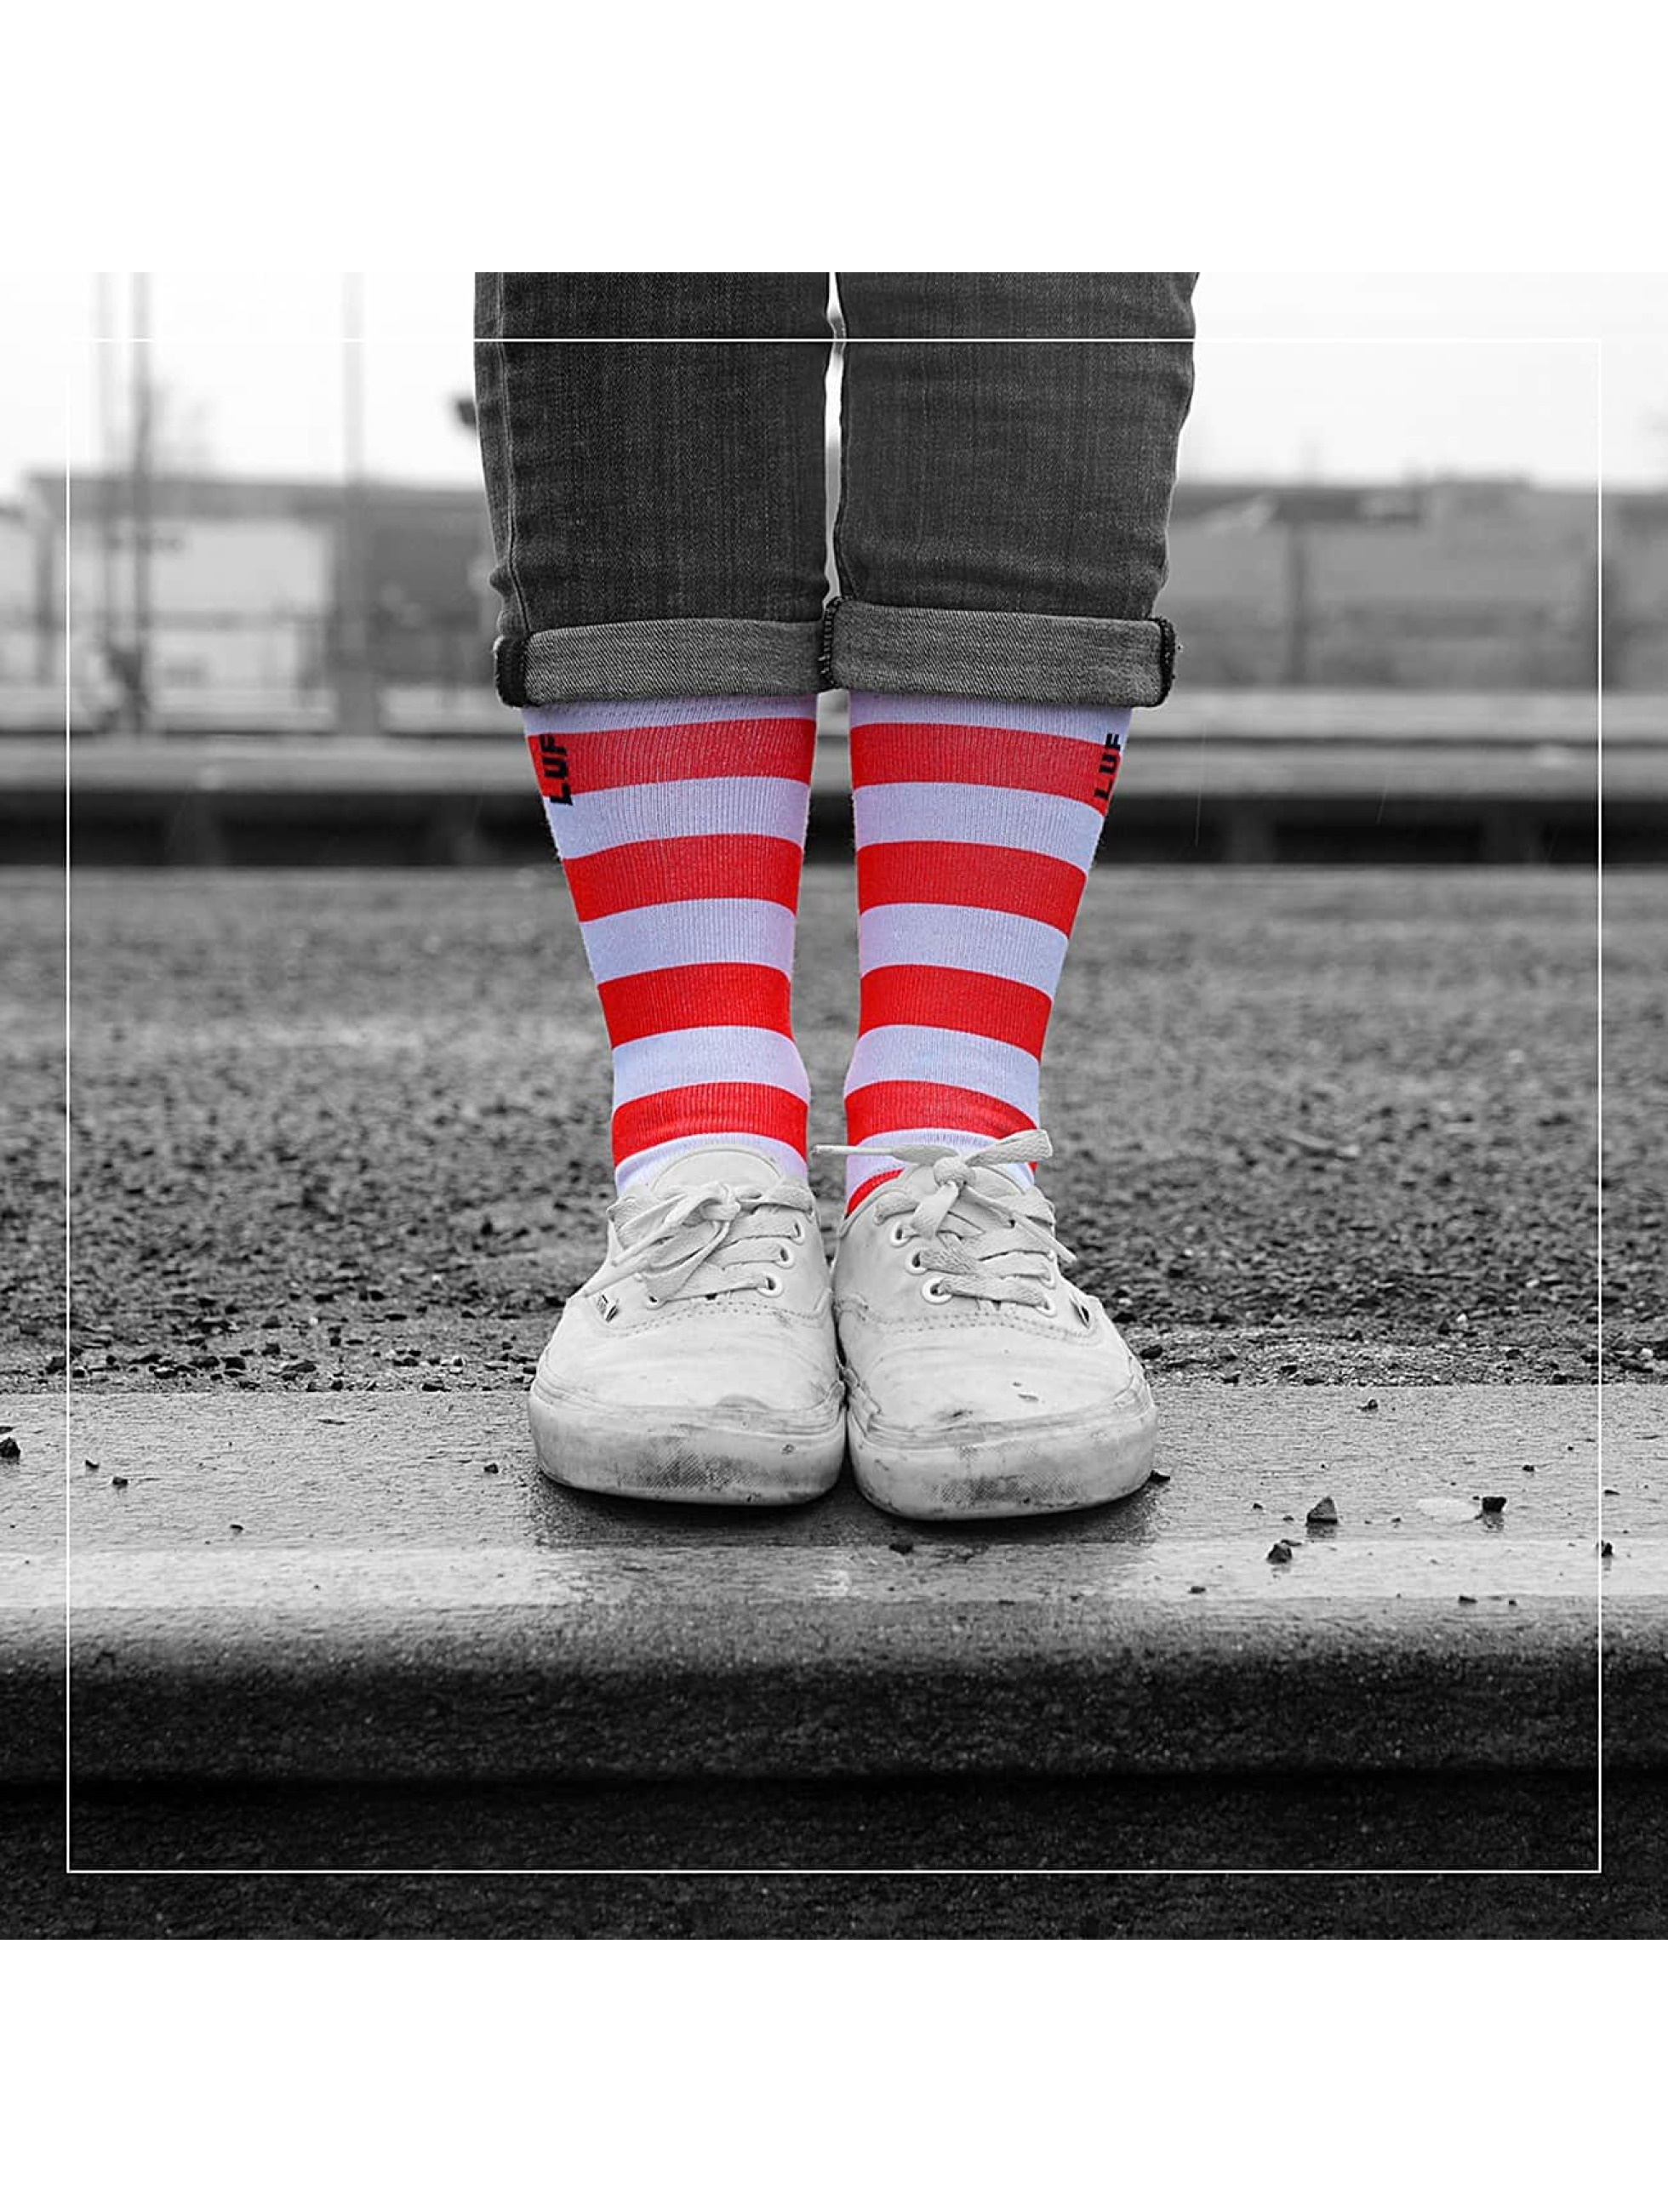 LUF SOX Socks Ronald colored